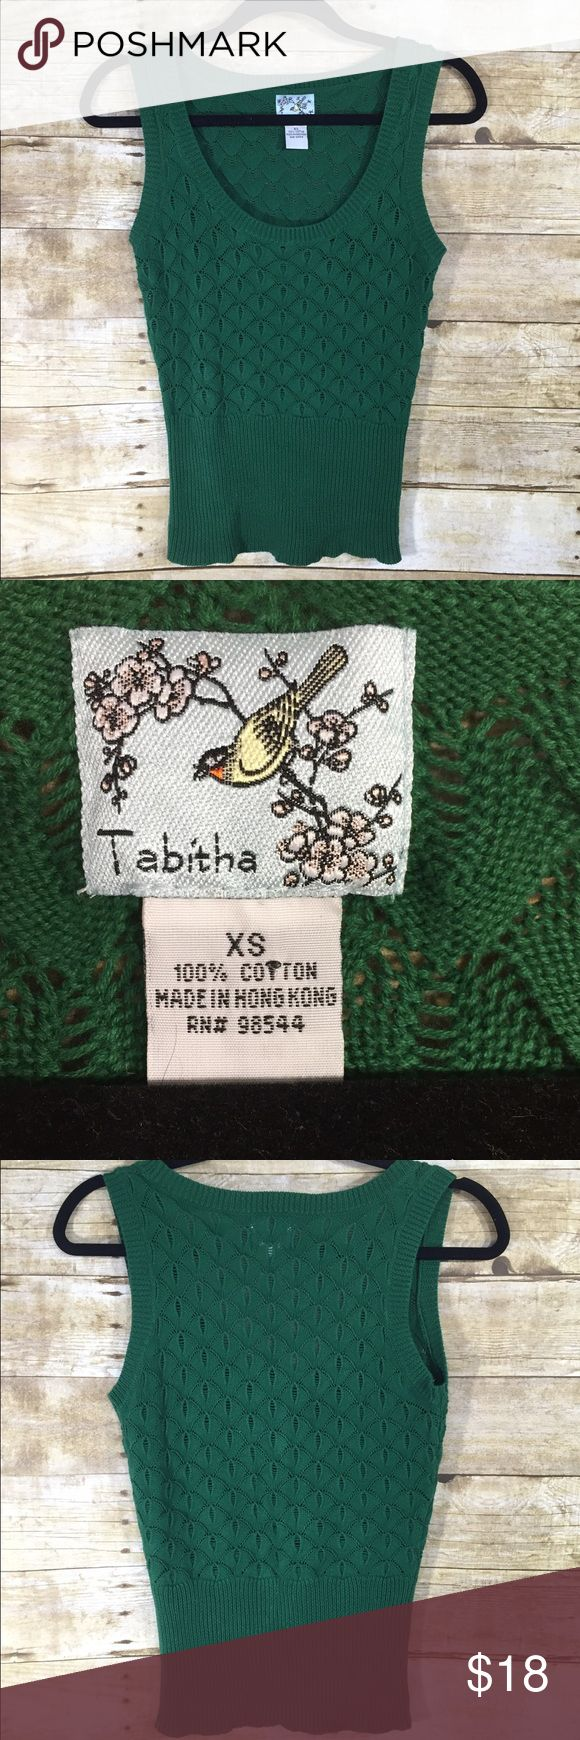 Anthropologie Tabitha Green Sweater Vest Adorable perfect for fall green sleeveless scoop neck sweater vest from Tabitha an Anthropologie brand. In very good used condition! Anthropologie Sweaters Crew & Scoop Necks